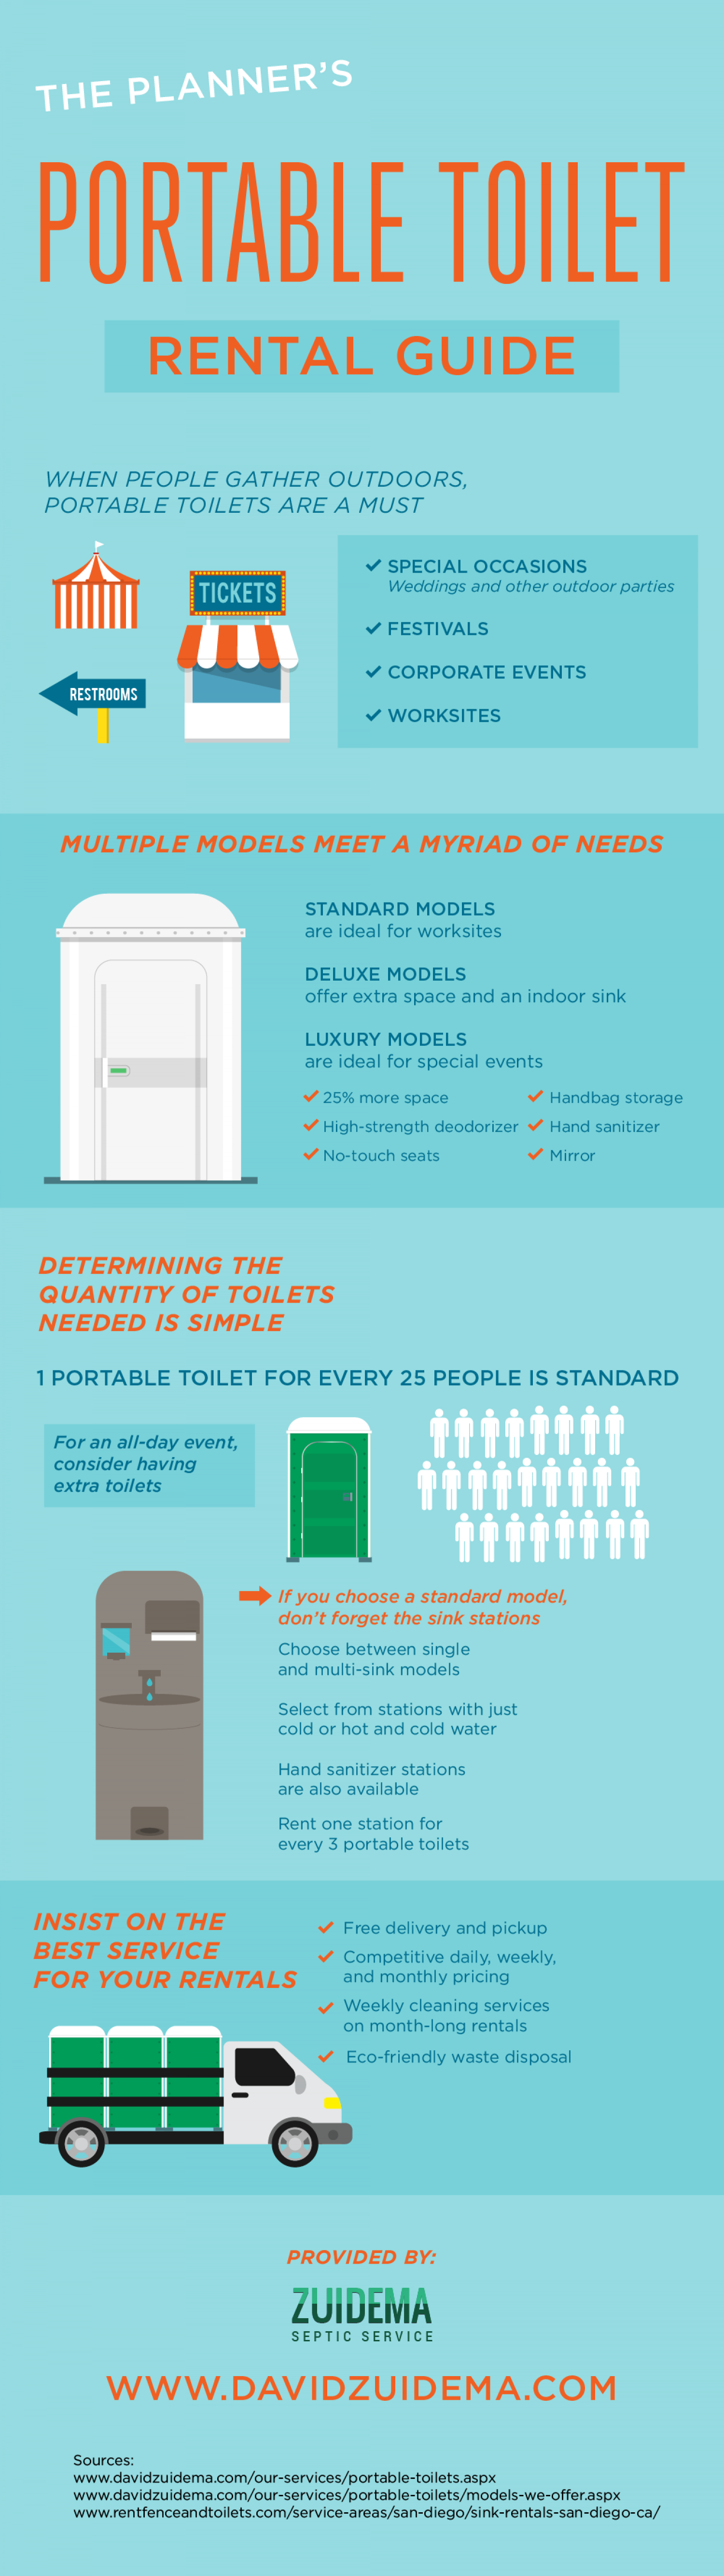 The Planner's Portable Toilet Rental Guide Infographic